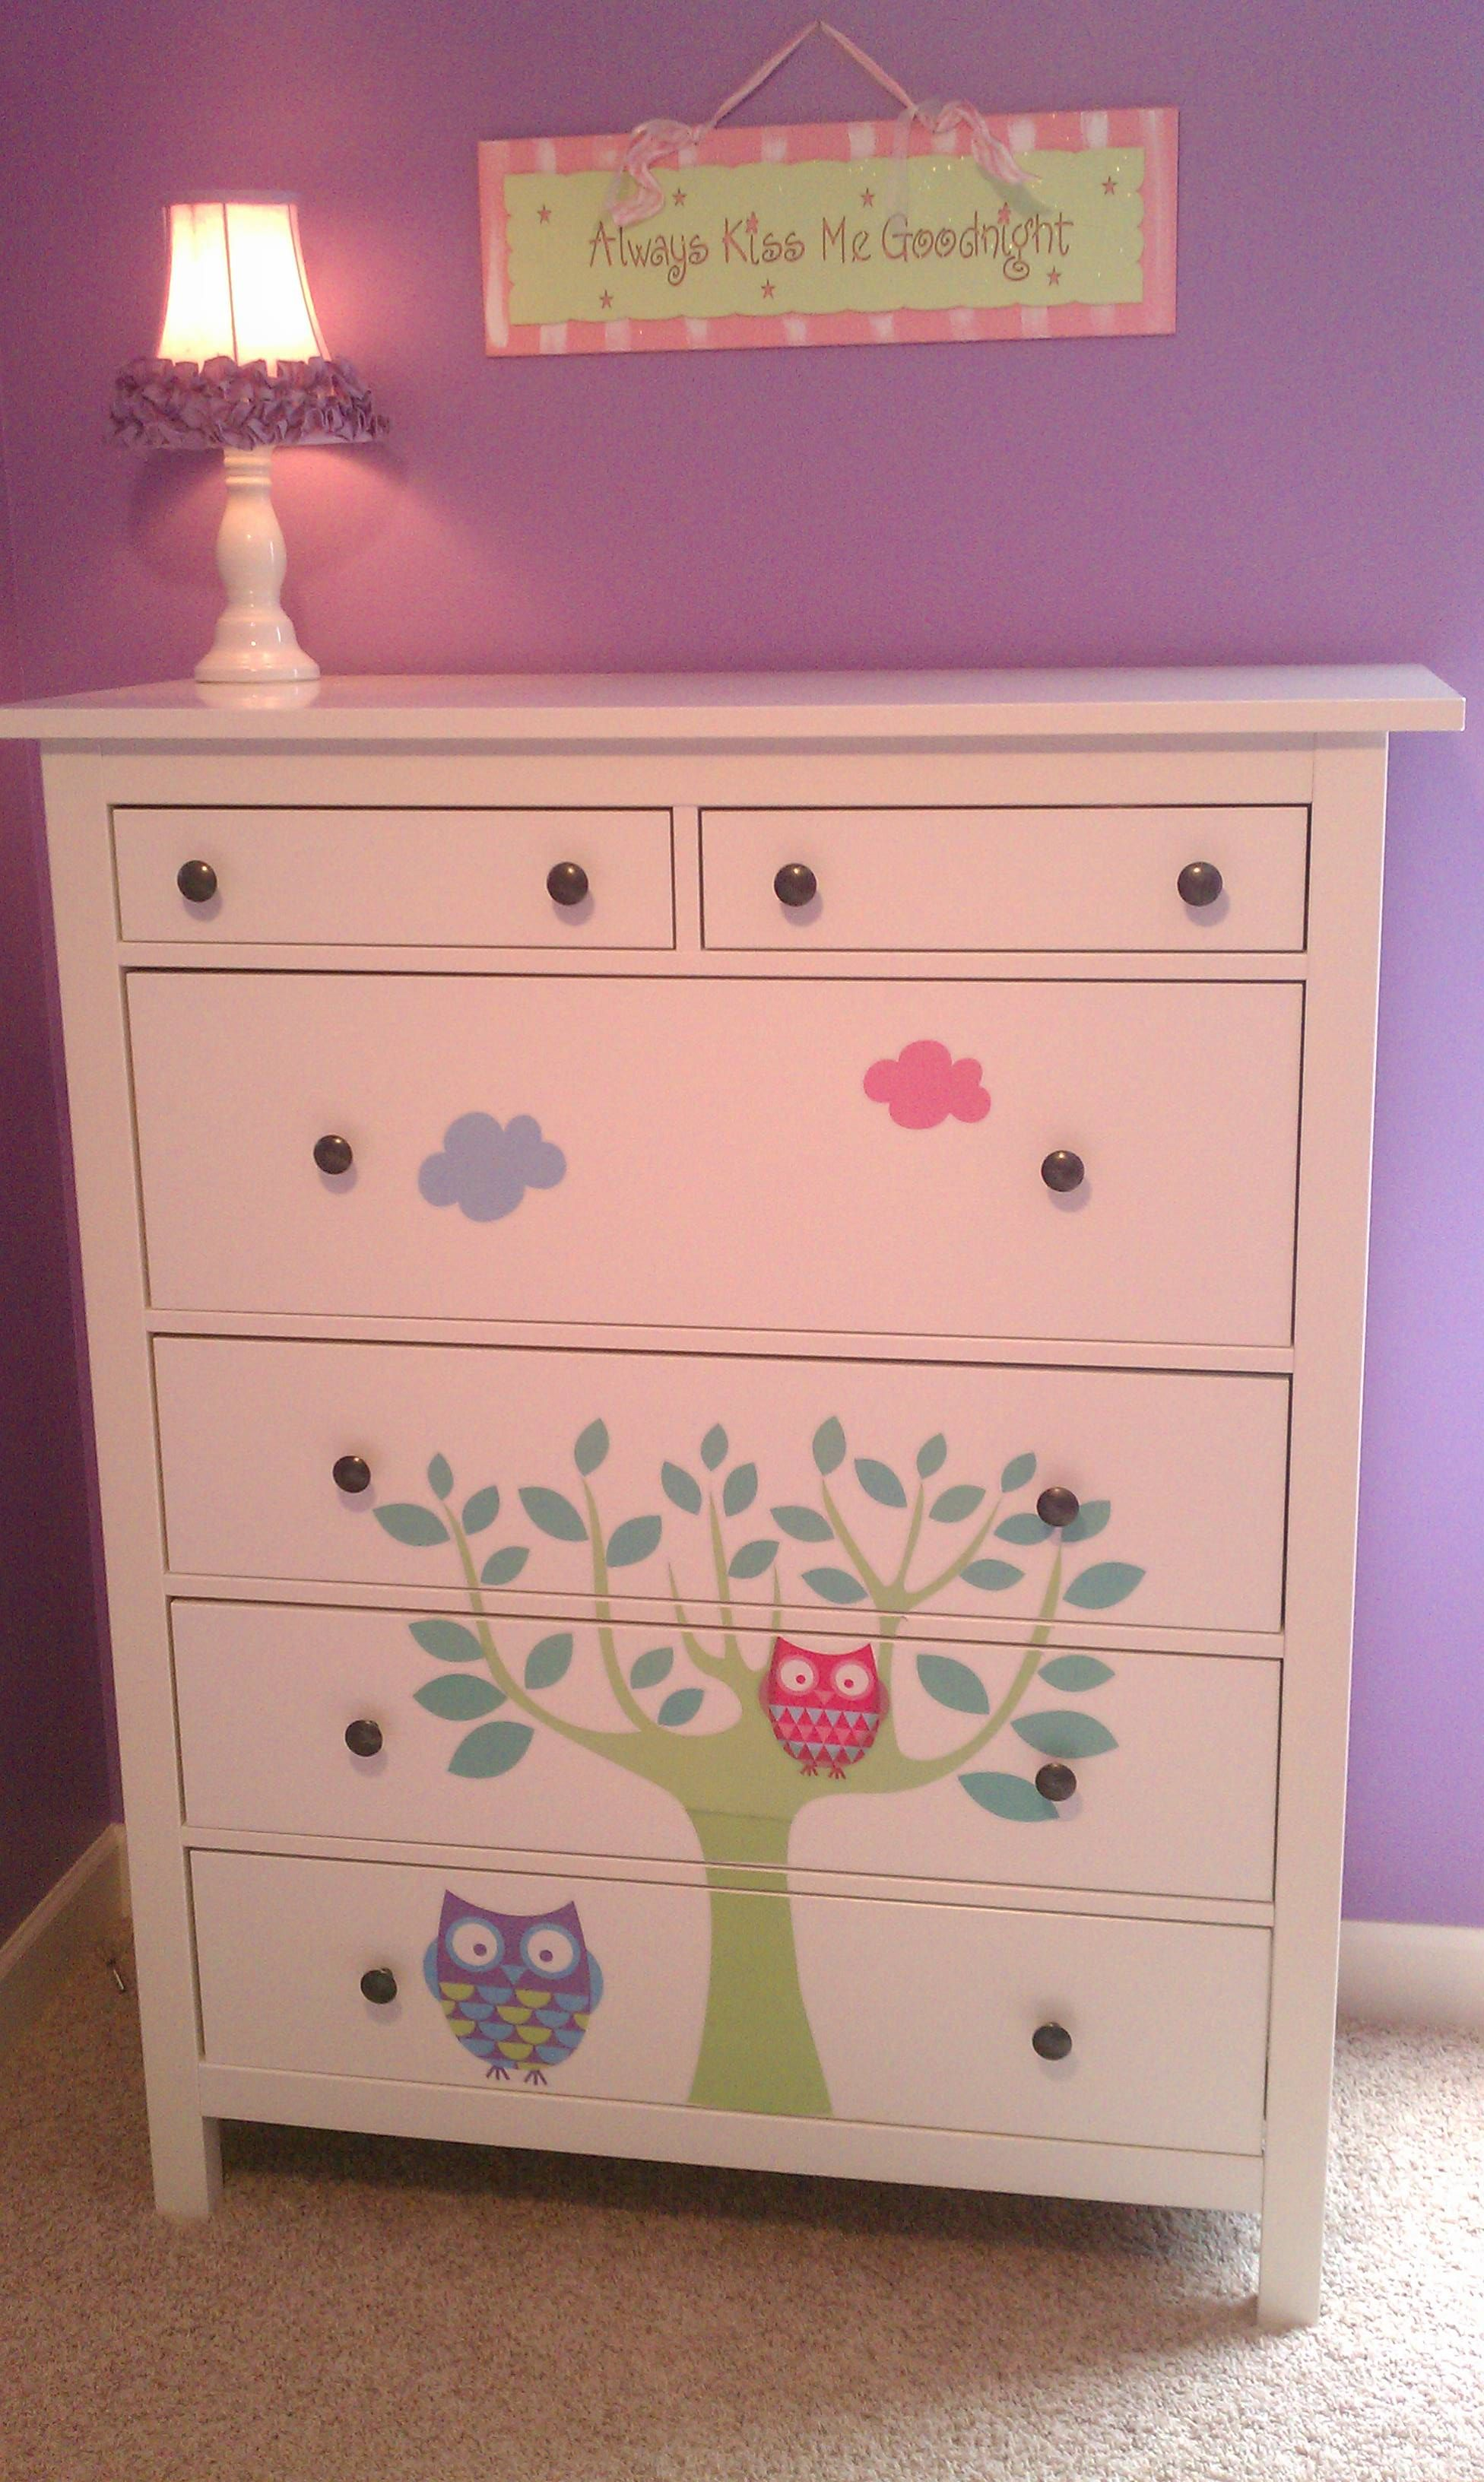 Best Customizing A Plain White Ikea Dresser With Wall Decals 400 x 300